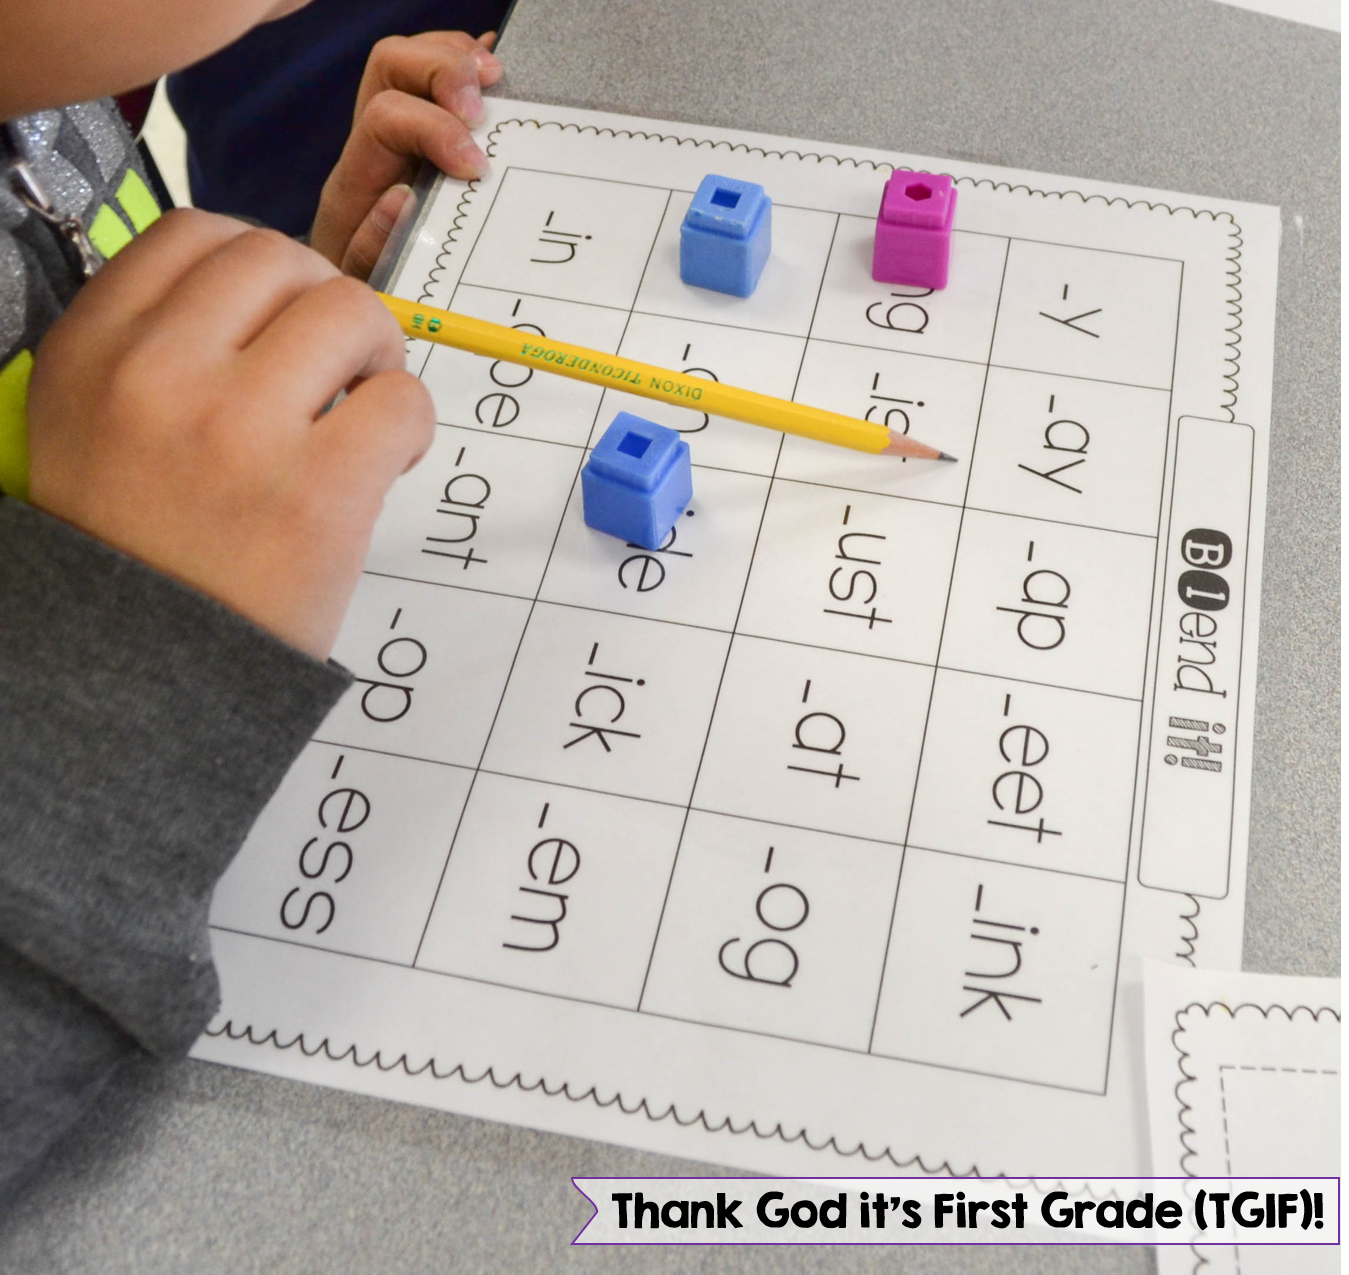 Second Grade Phonics Skills | 2nd Grade Phonics Activities